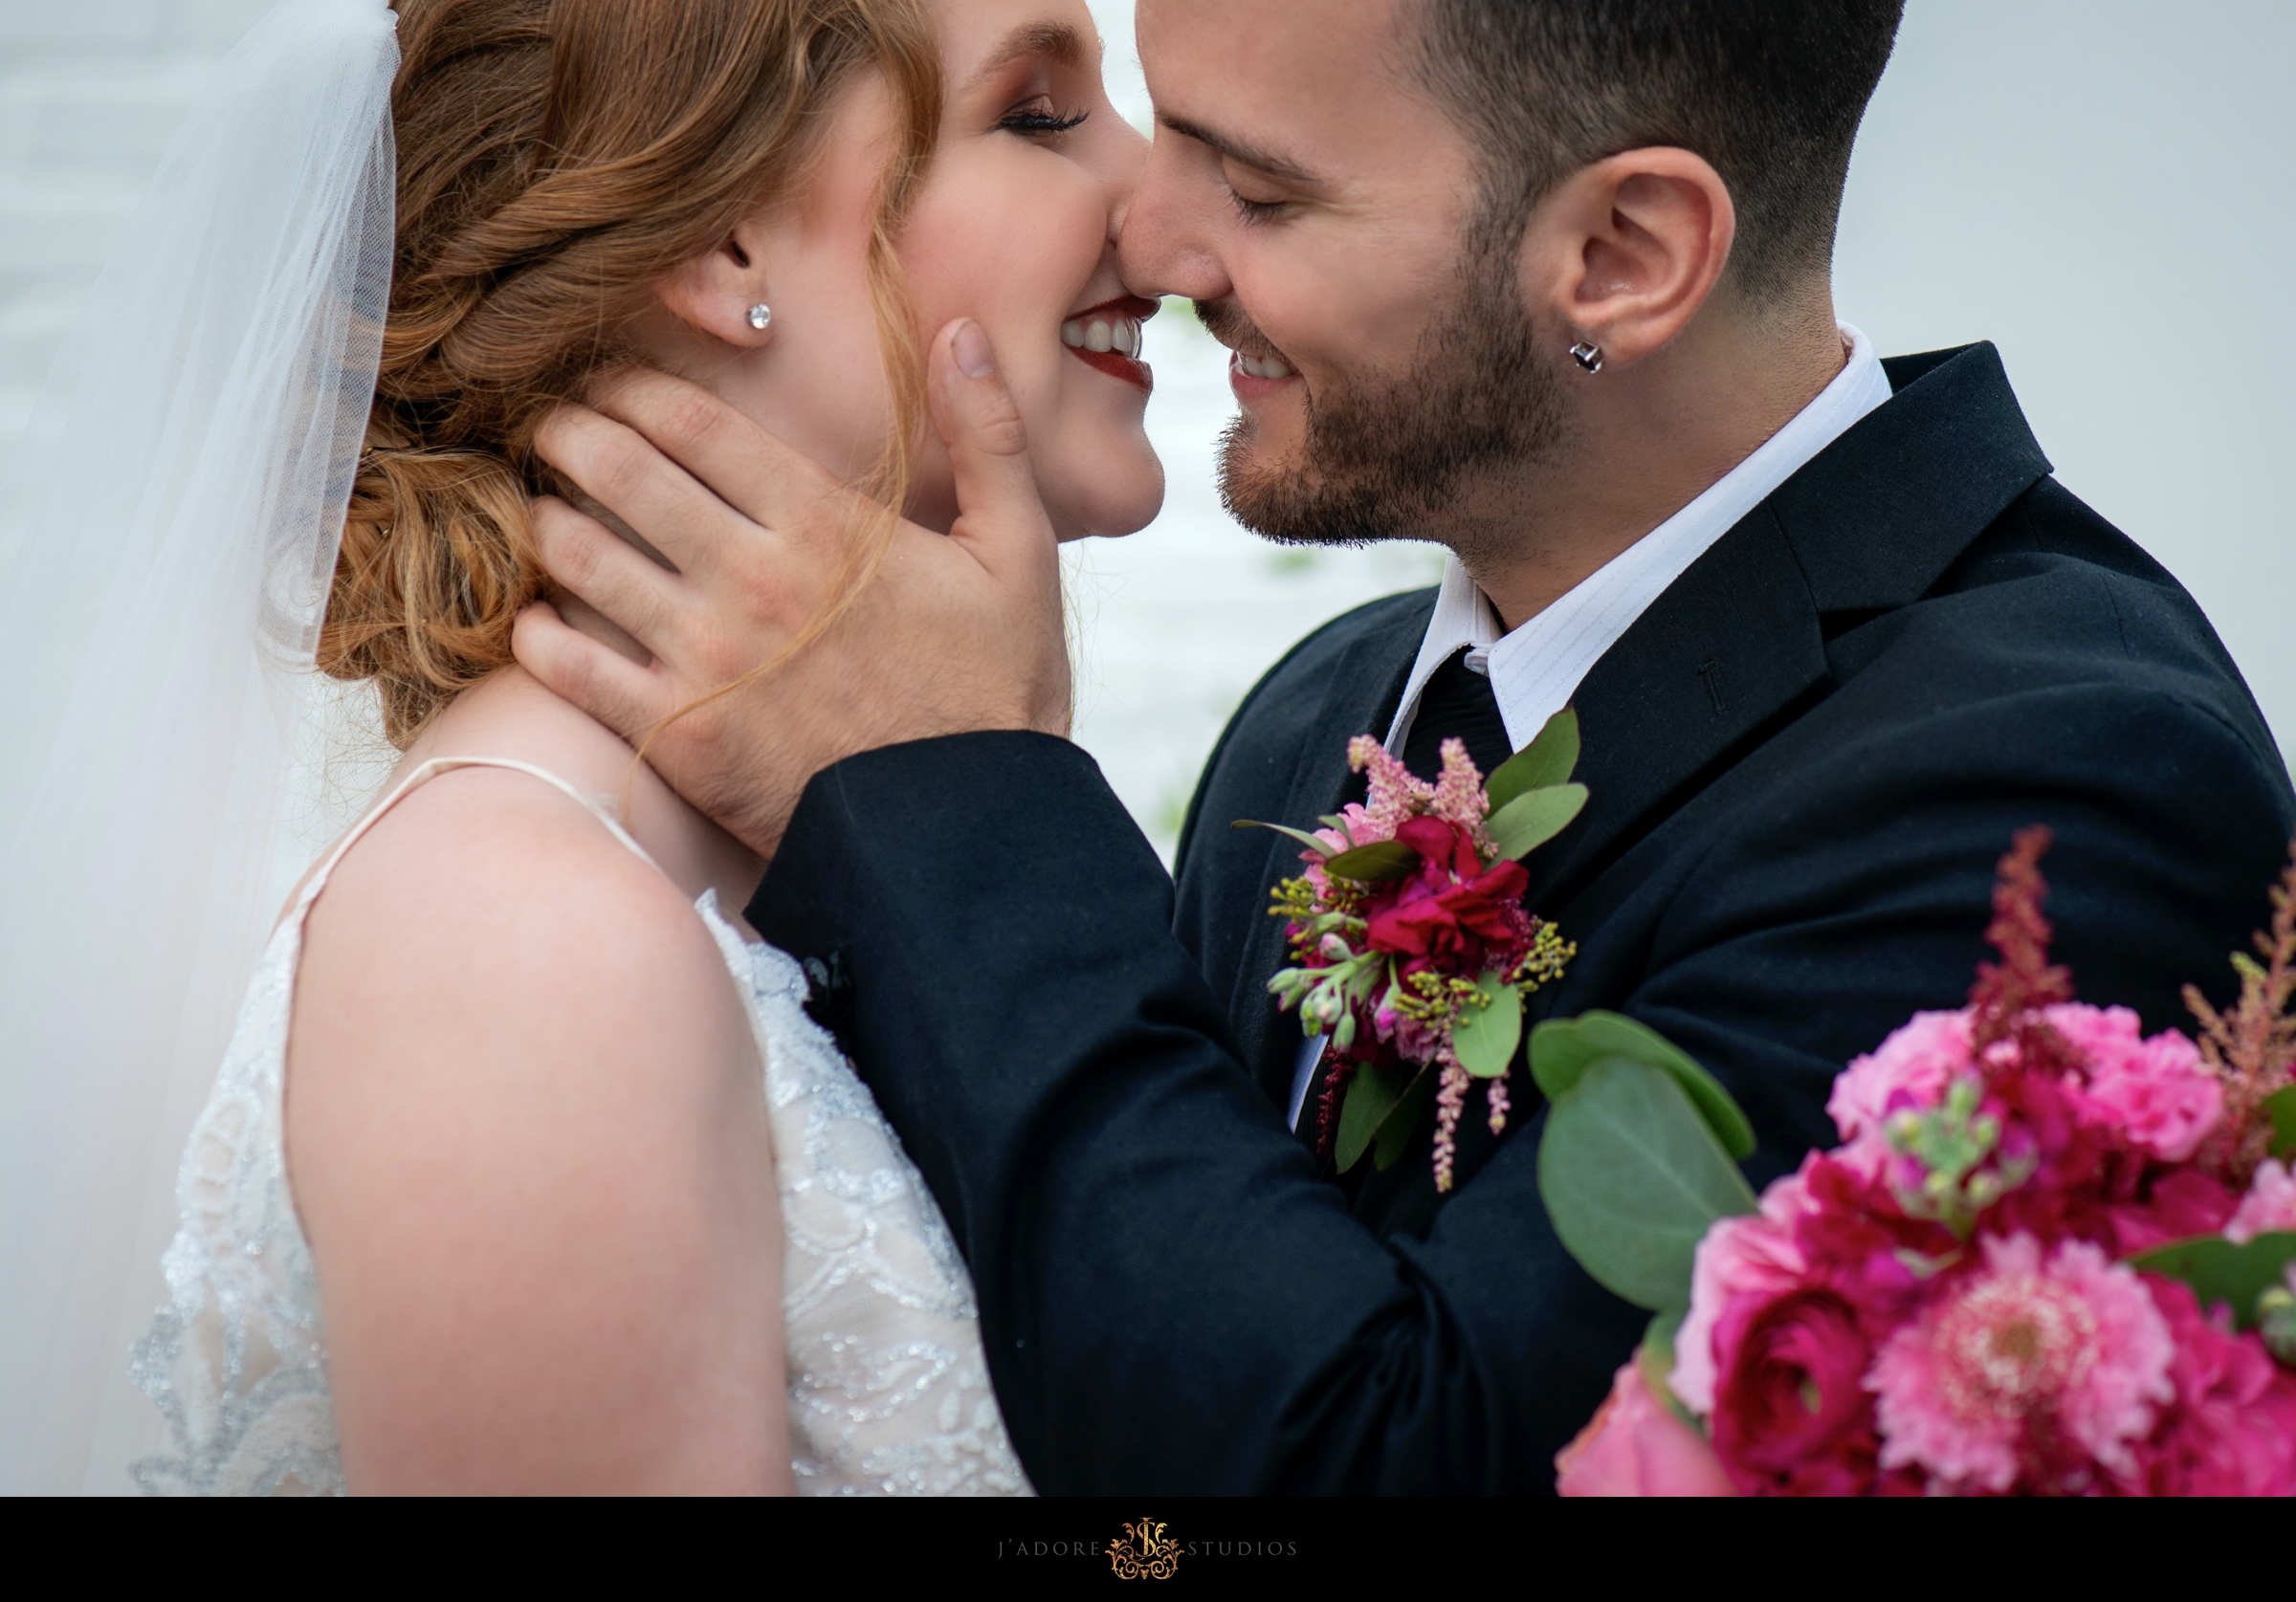 Close up photo of bride and groom smiling